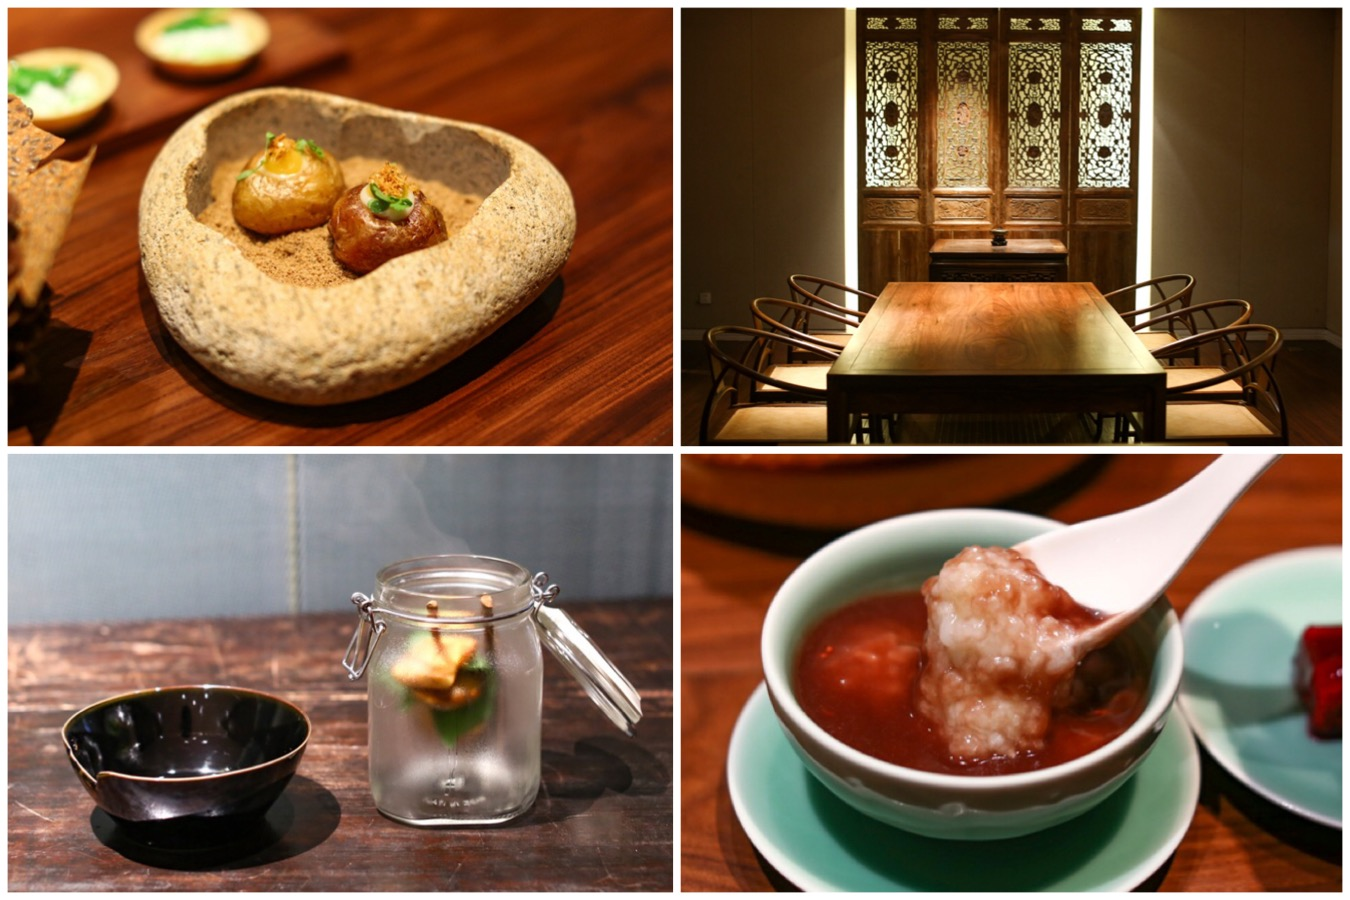 Fu He Hui 福和慧 - Michelin Starred, Vegetarian Fine Dining Restaurant In Shanghai Takes You On A Poetic Journey